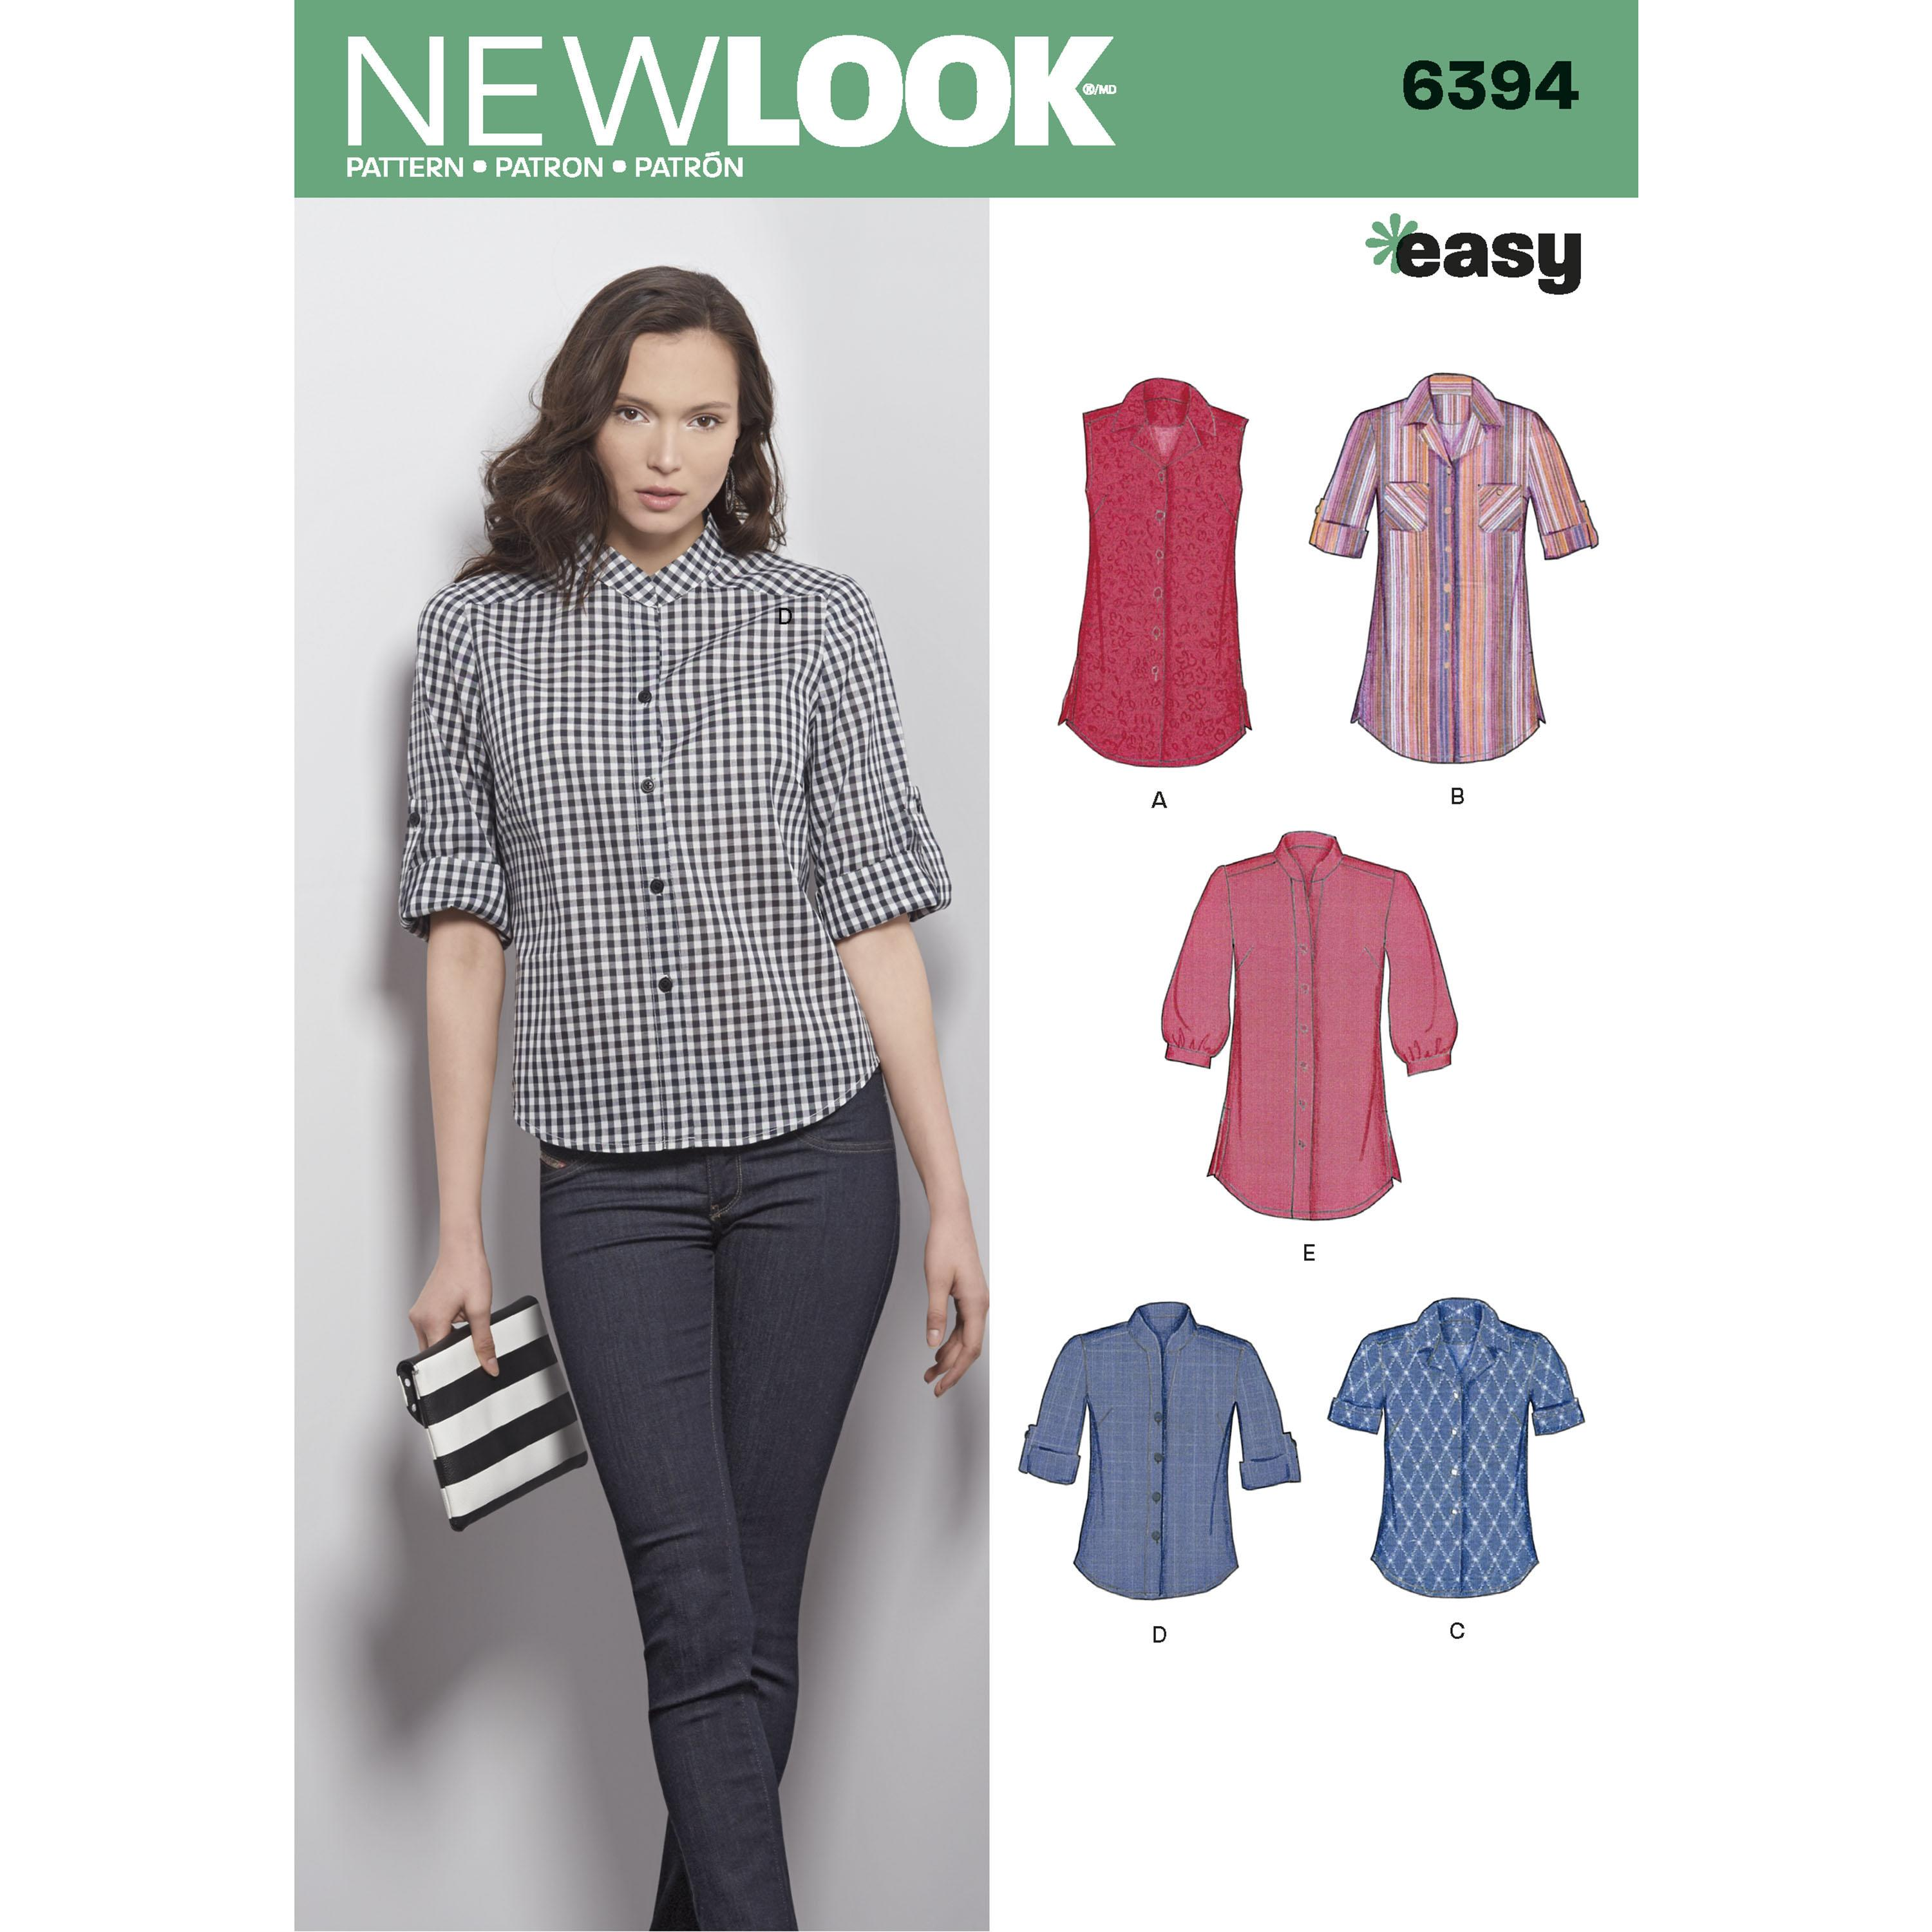 NewLook N6394 Misses' Button Front Tops